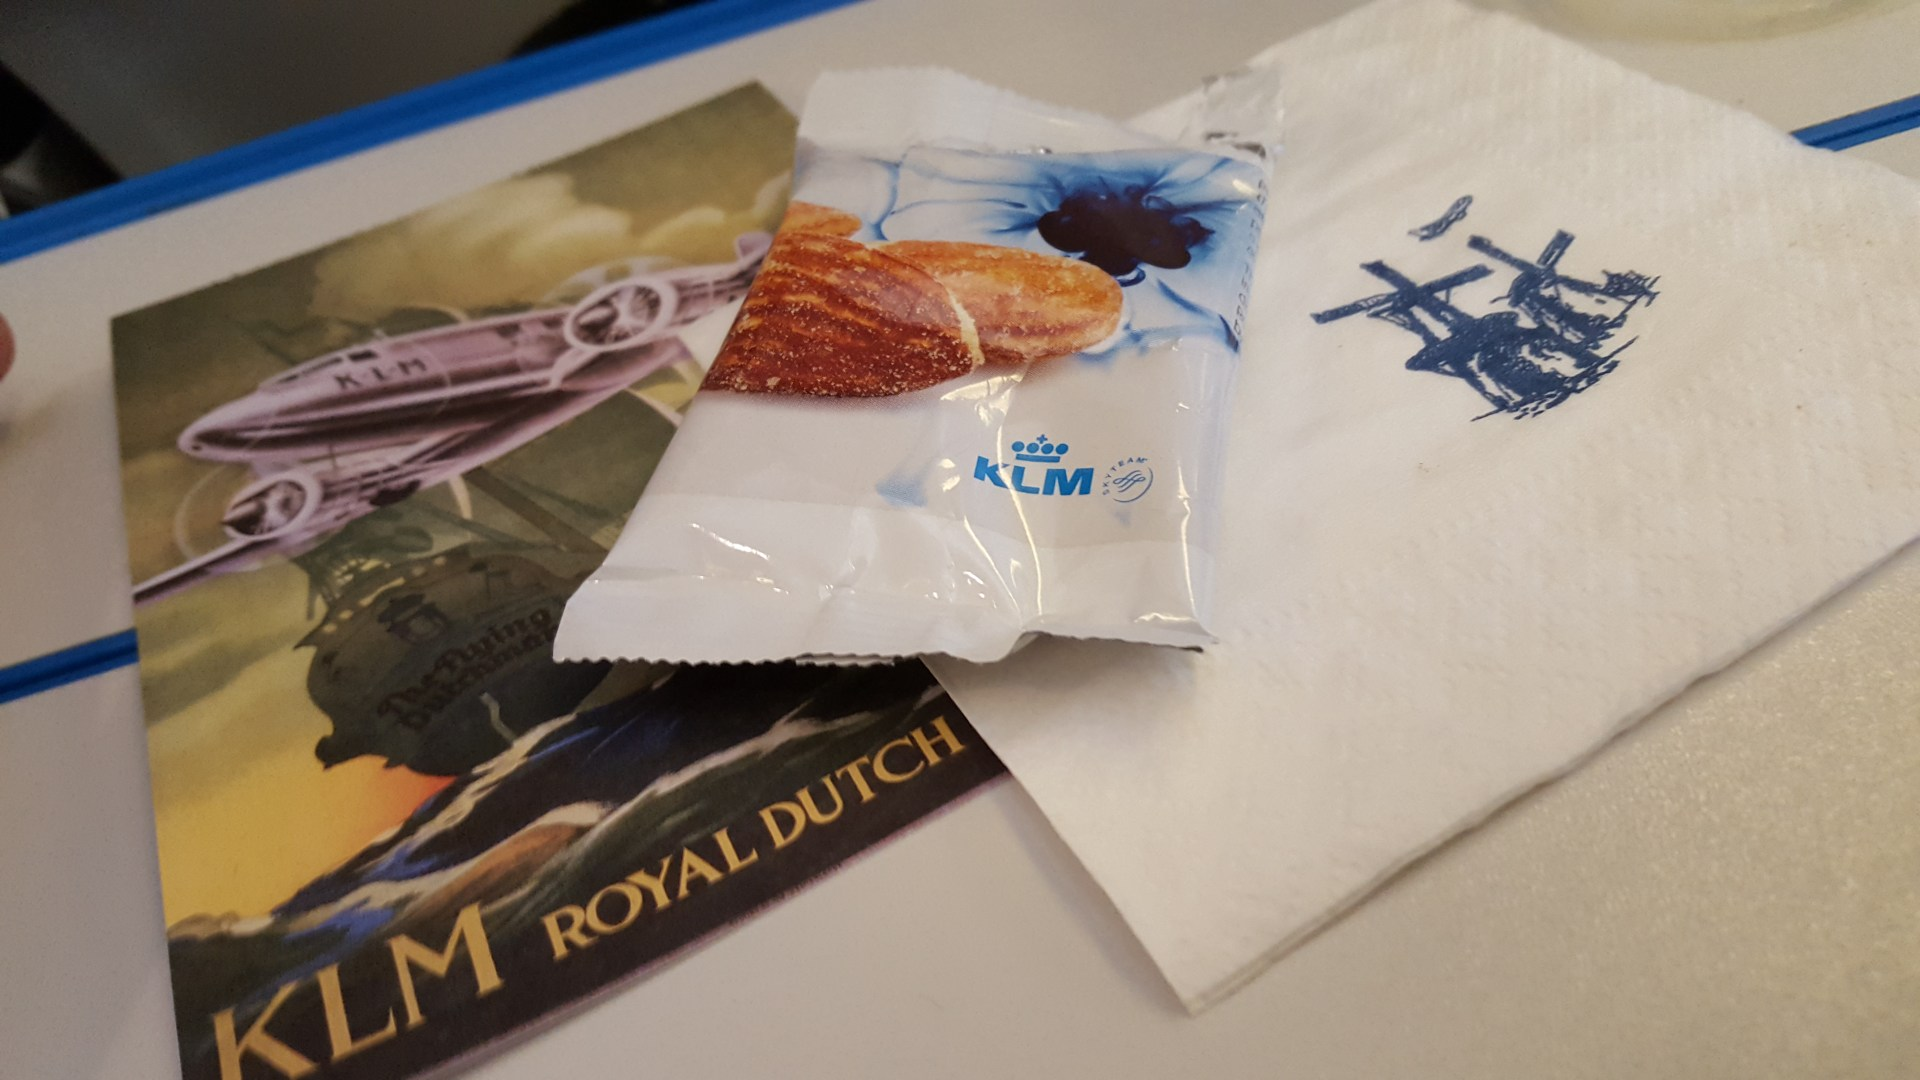 Brazilian menu at KLM flights: Sao Paulo – Amsterdam